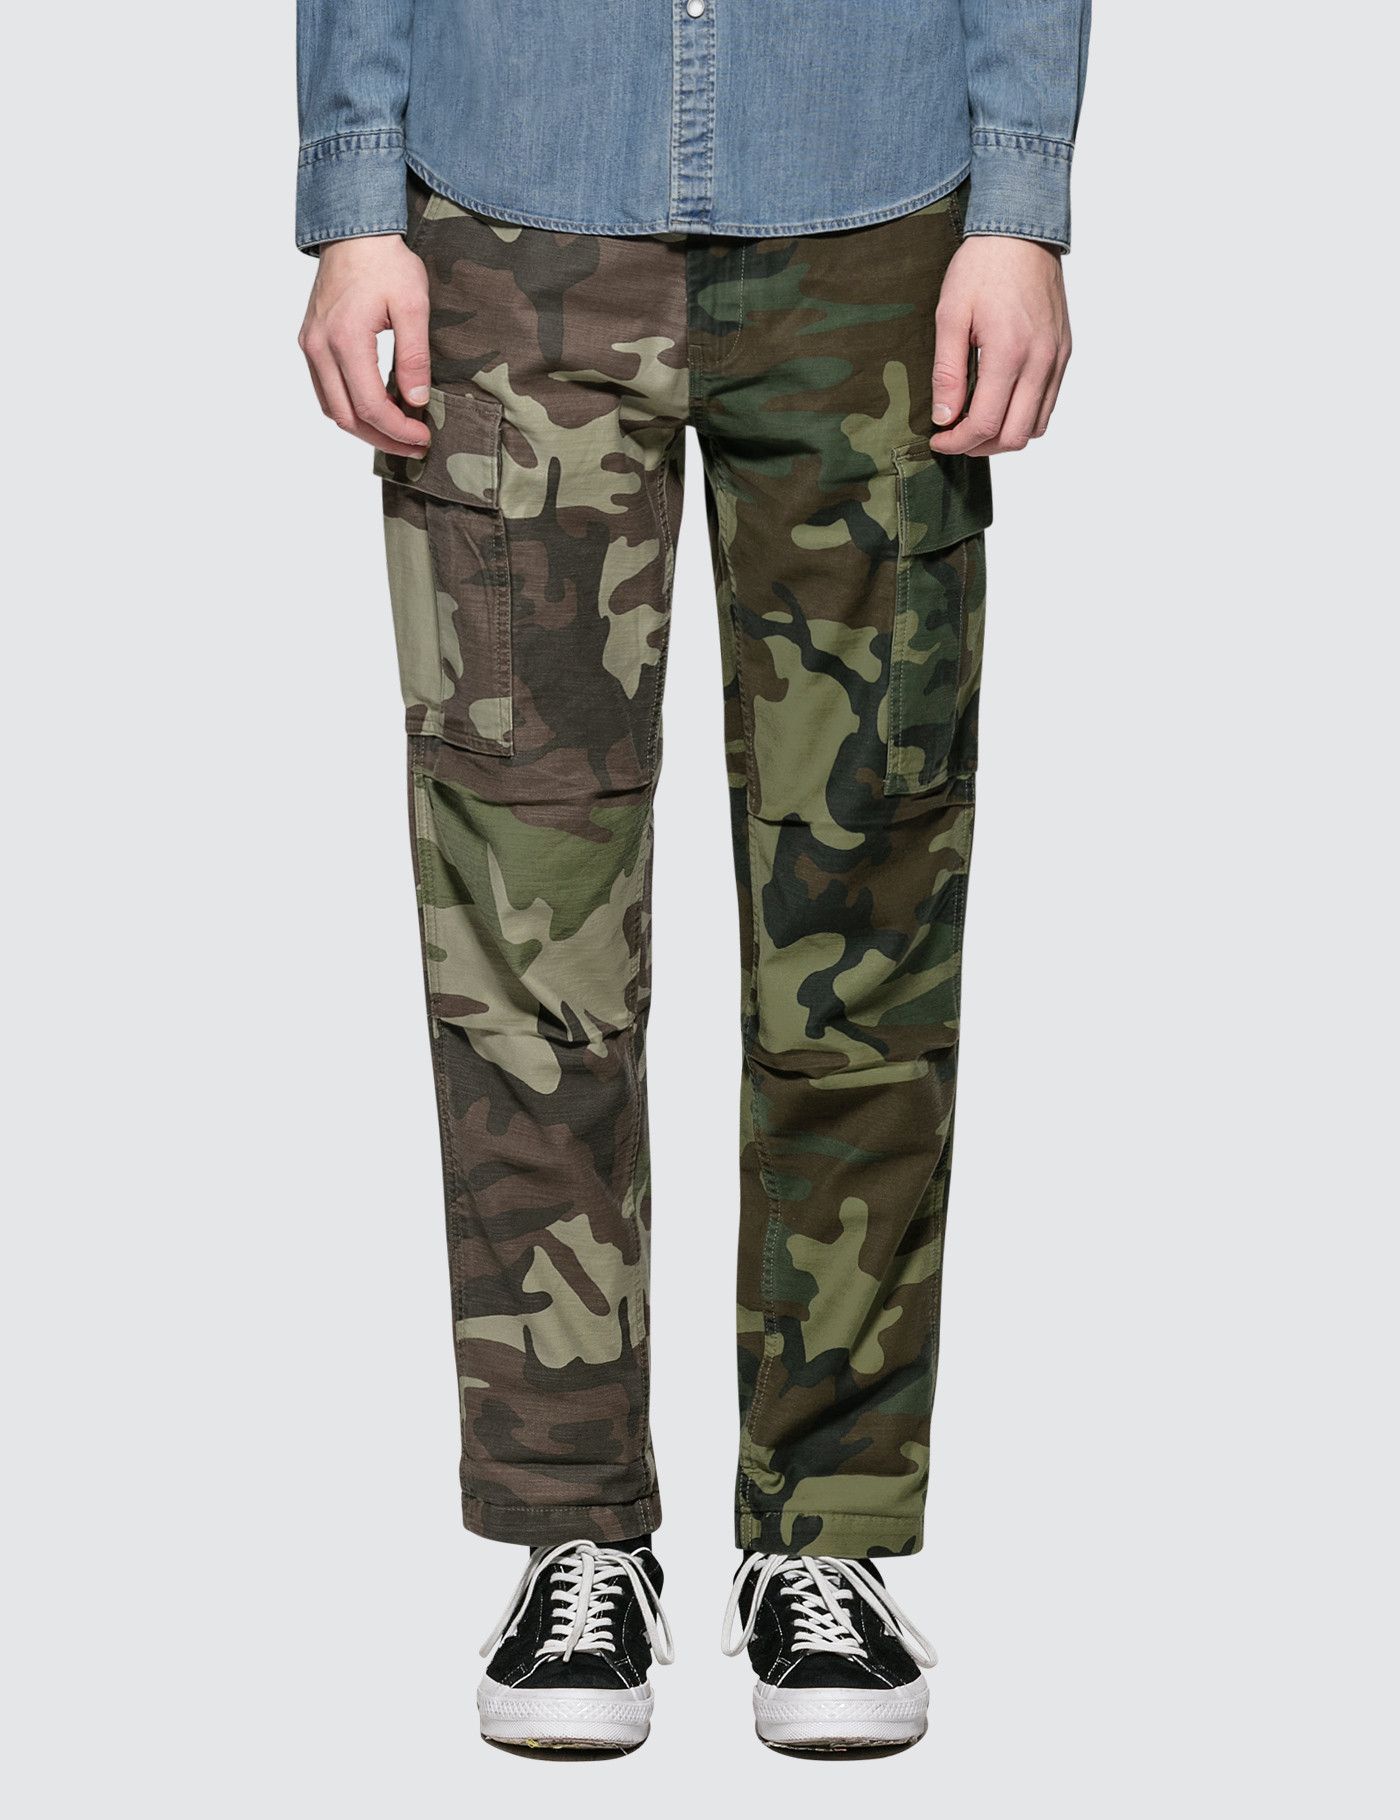 ef5c4816 Buy Original Levi's Hi-ball Cargo Pants at Indonesia | BOBOBOBO